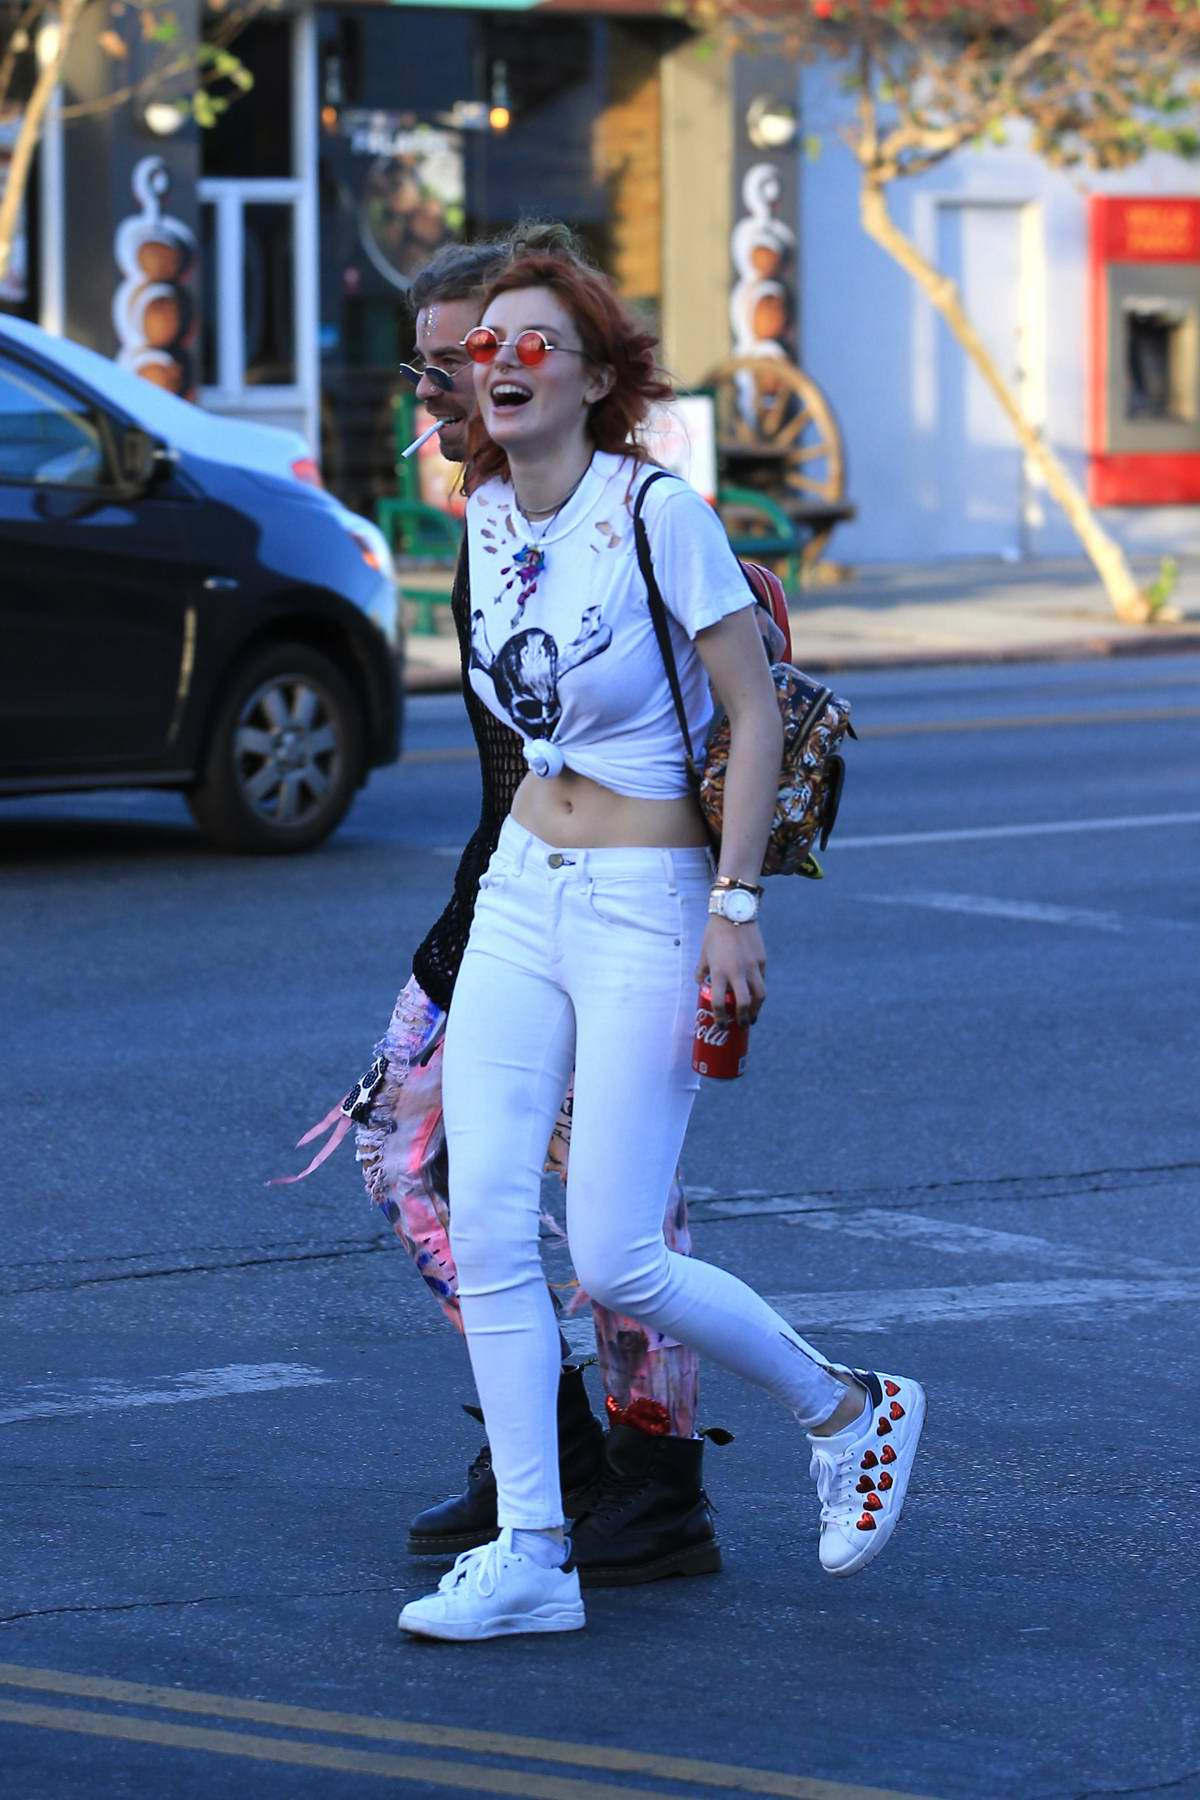 Bella Thorne was spotted leaving Body Electric Tattoo Shop in West Hollywood, Los Angeles